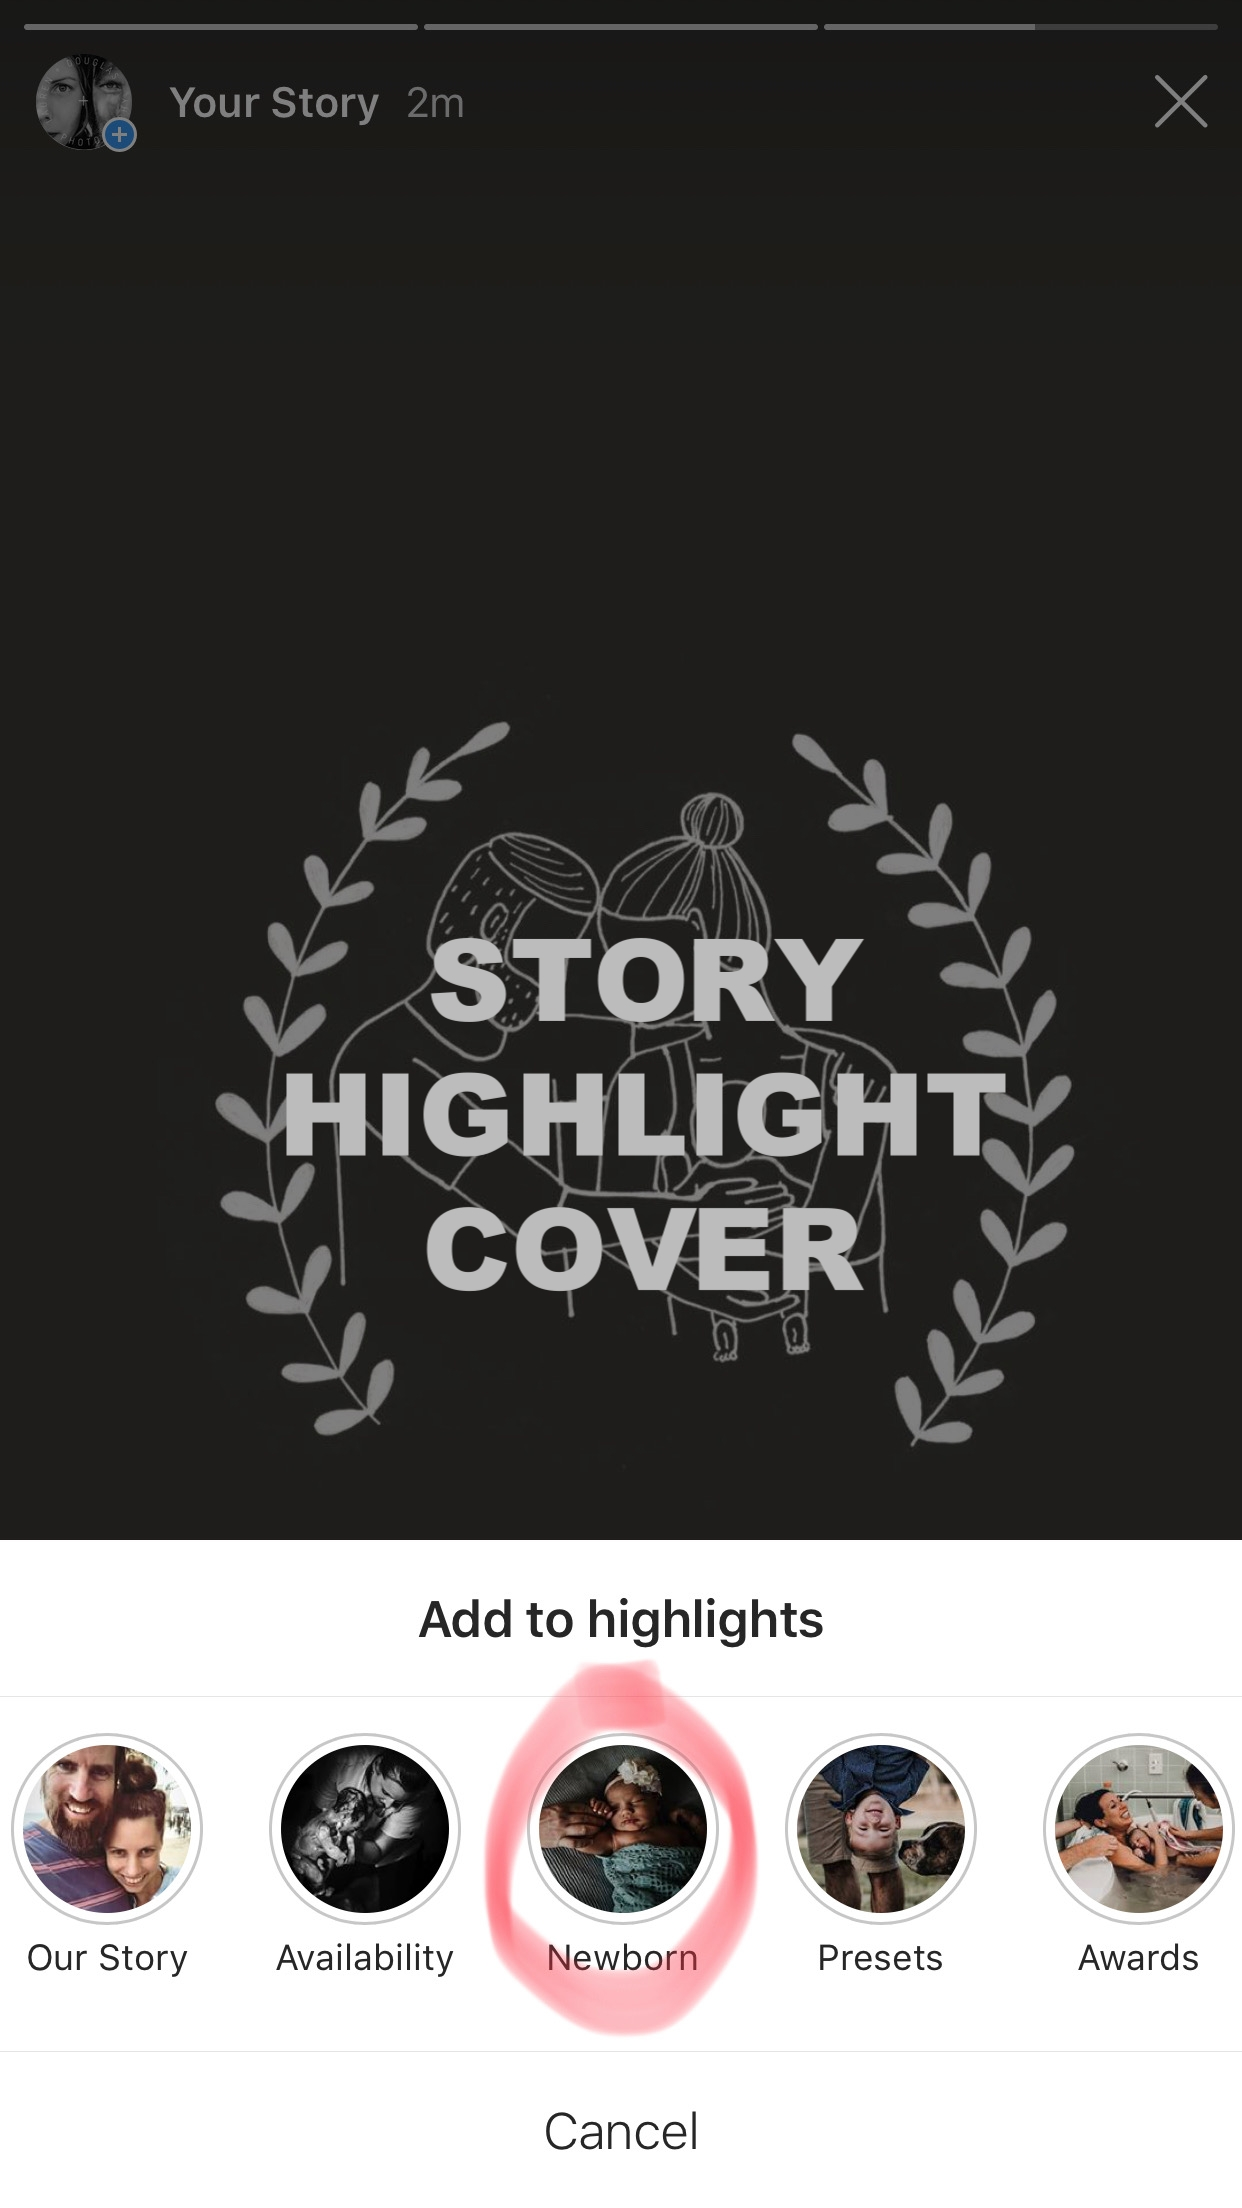 4. [SELECT] the existing highlight you want to assign your cover to, under 'Add to highlights'.